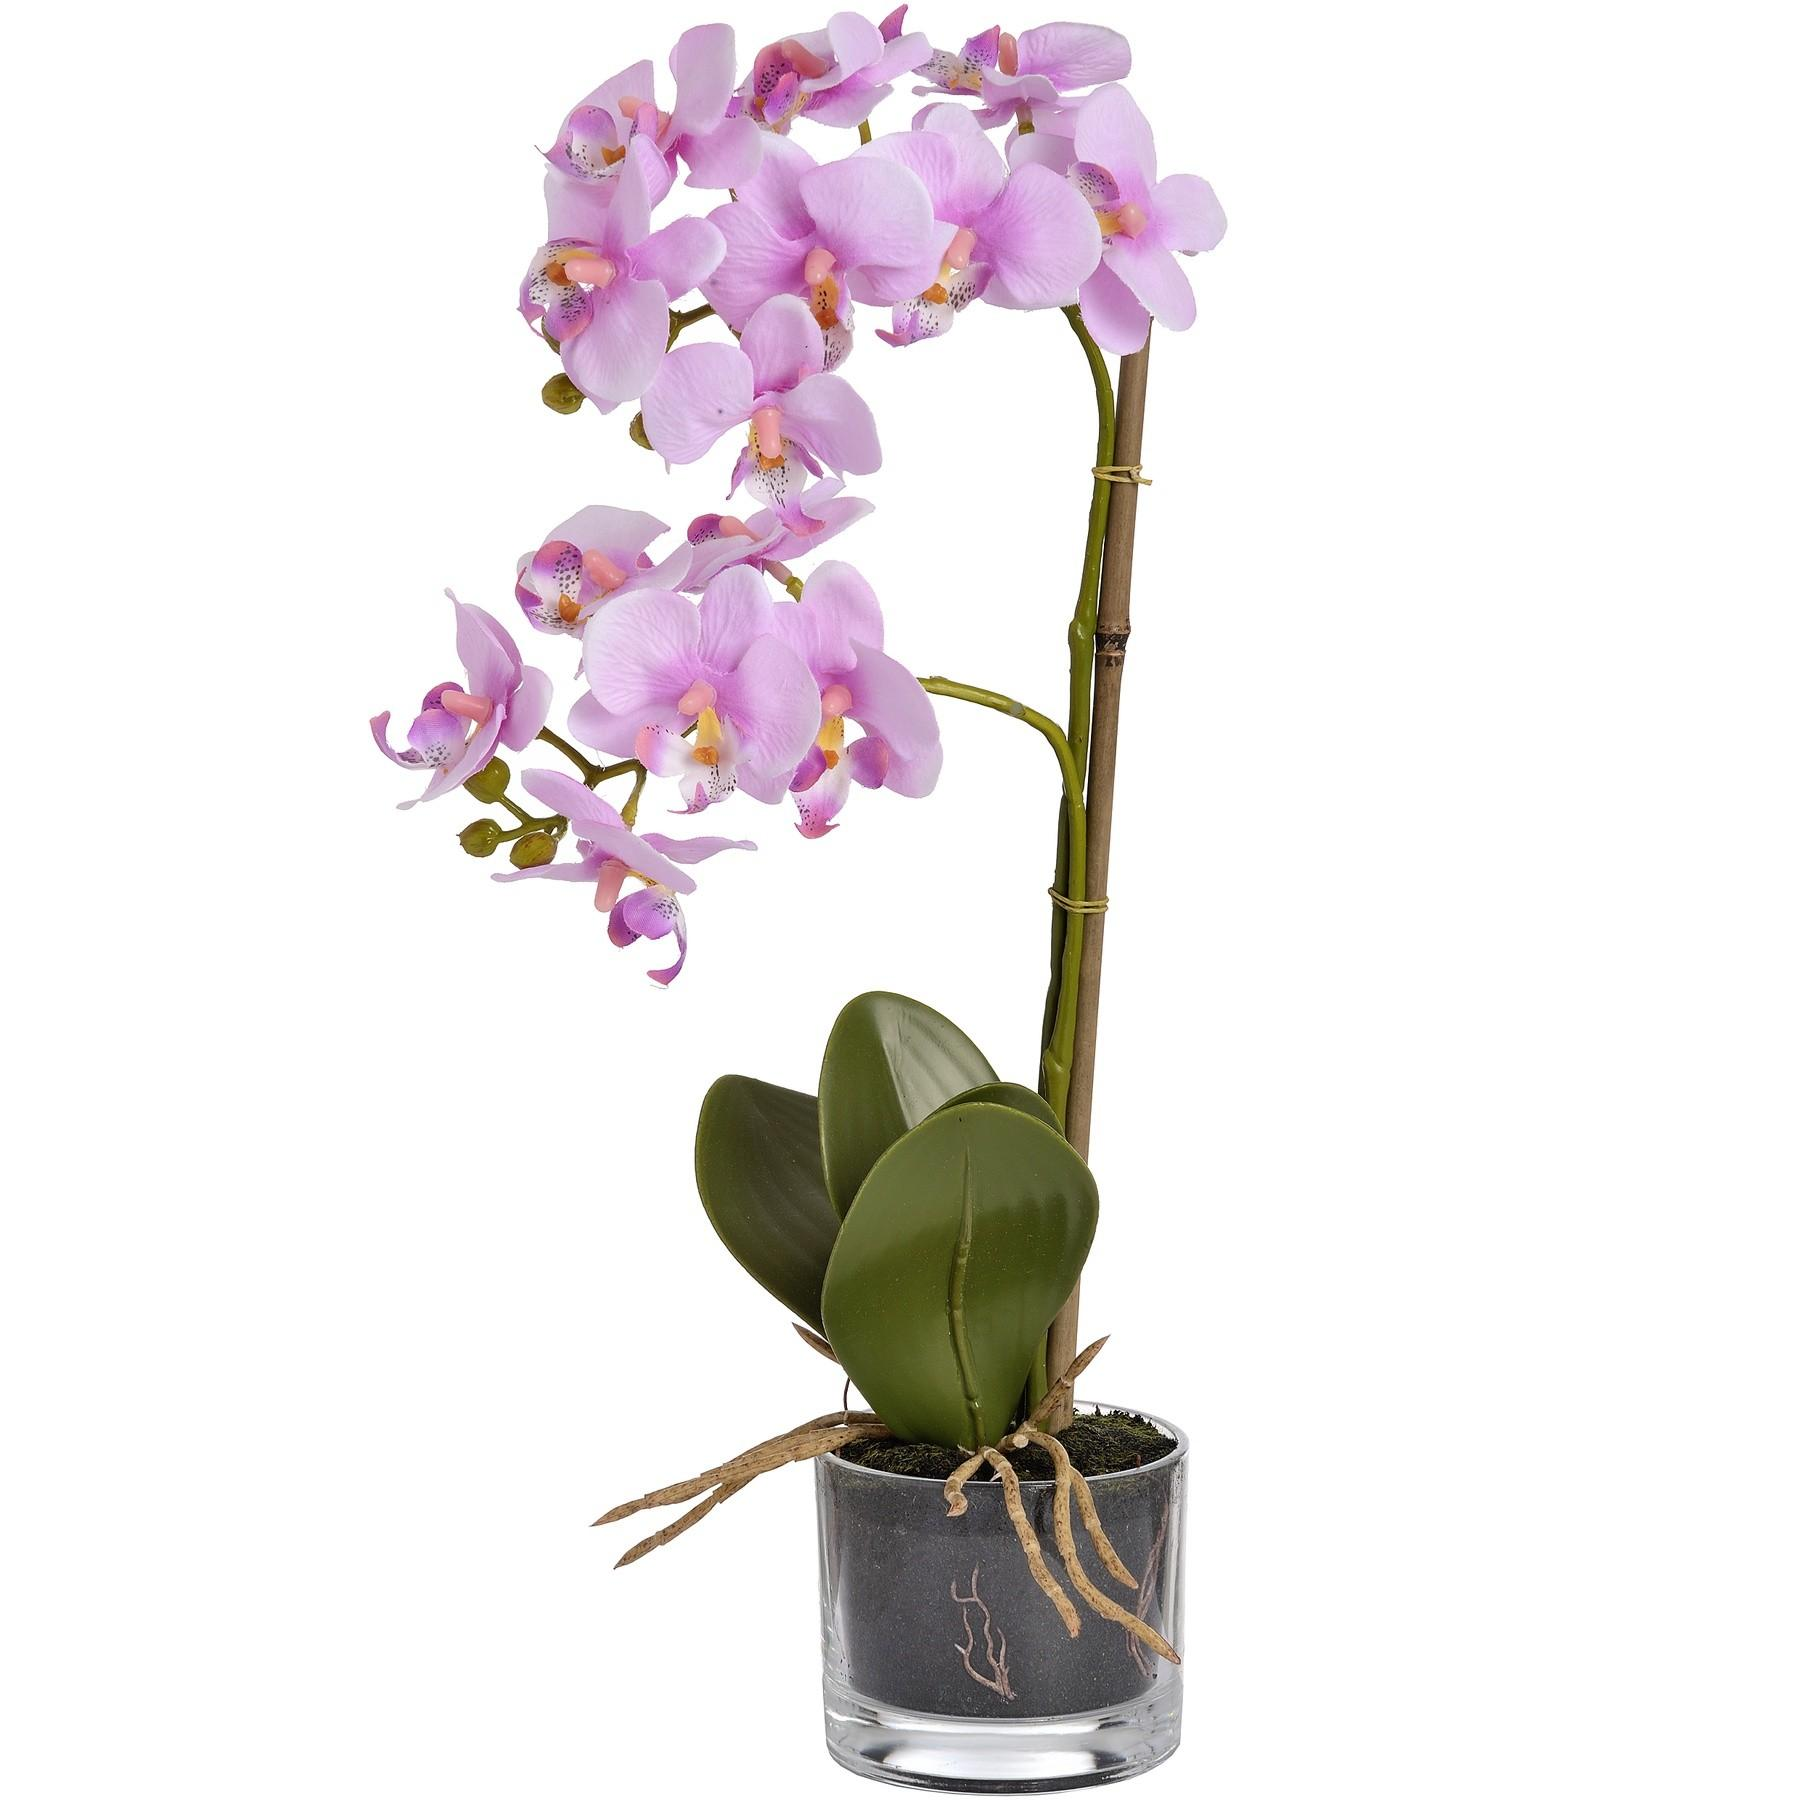 Hill Interiors Harmony Potted Artificial Orchid Plant